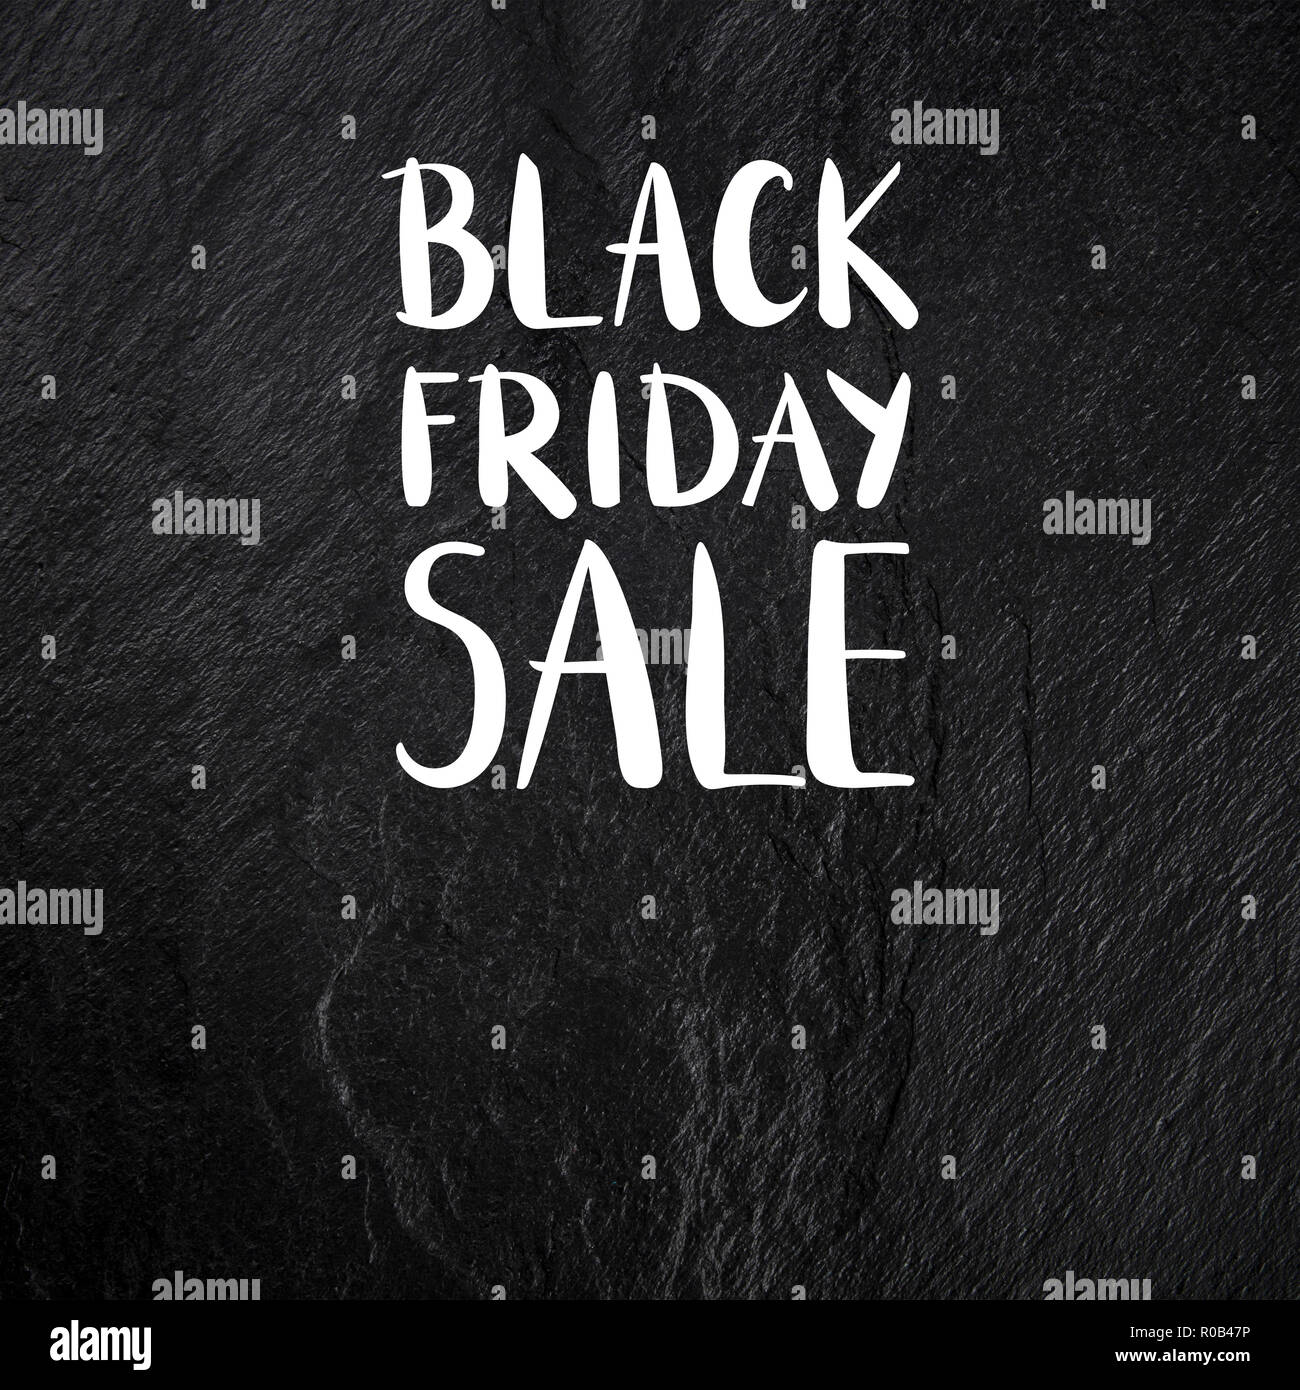 Black Sale Black Friday Sale Stock Photos Black Friday Sale Stock Images